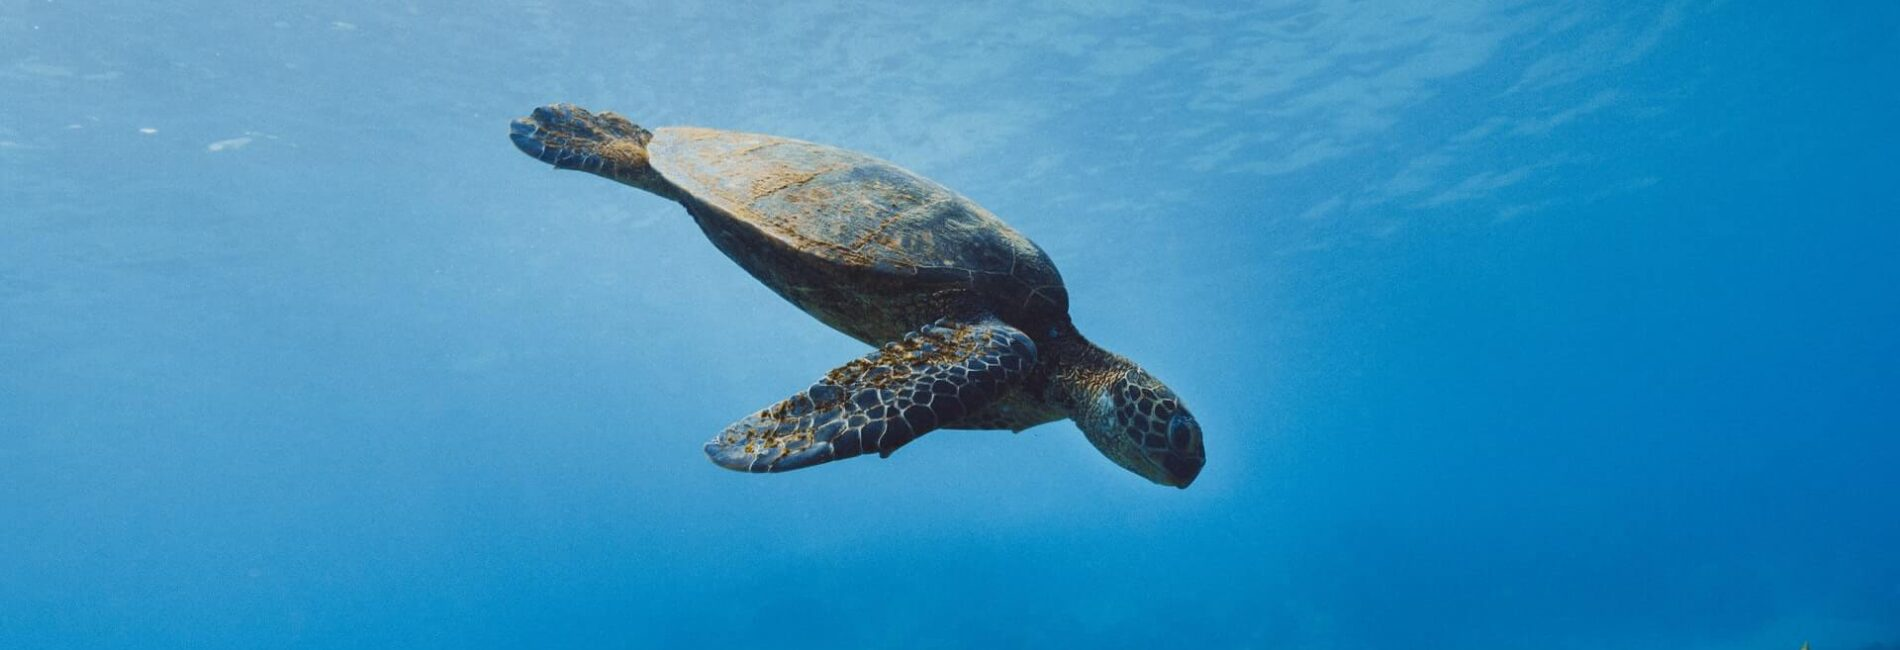 Did You Know–Pet Turtles May Cause Fatal Salmonella Infections